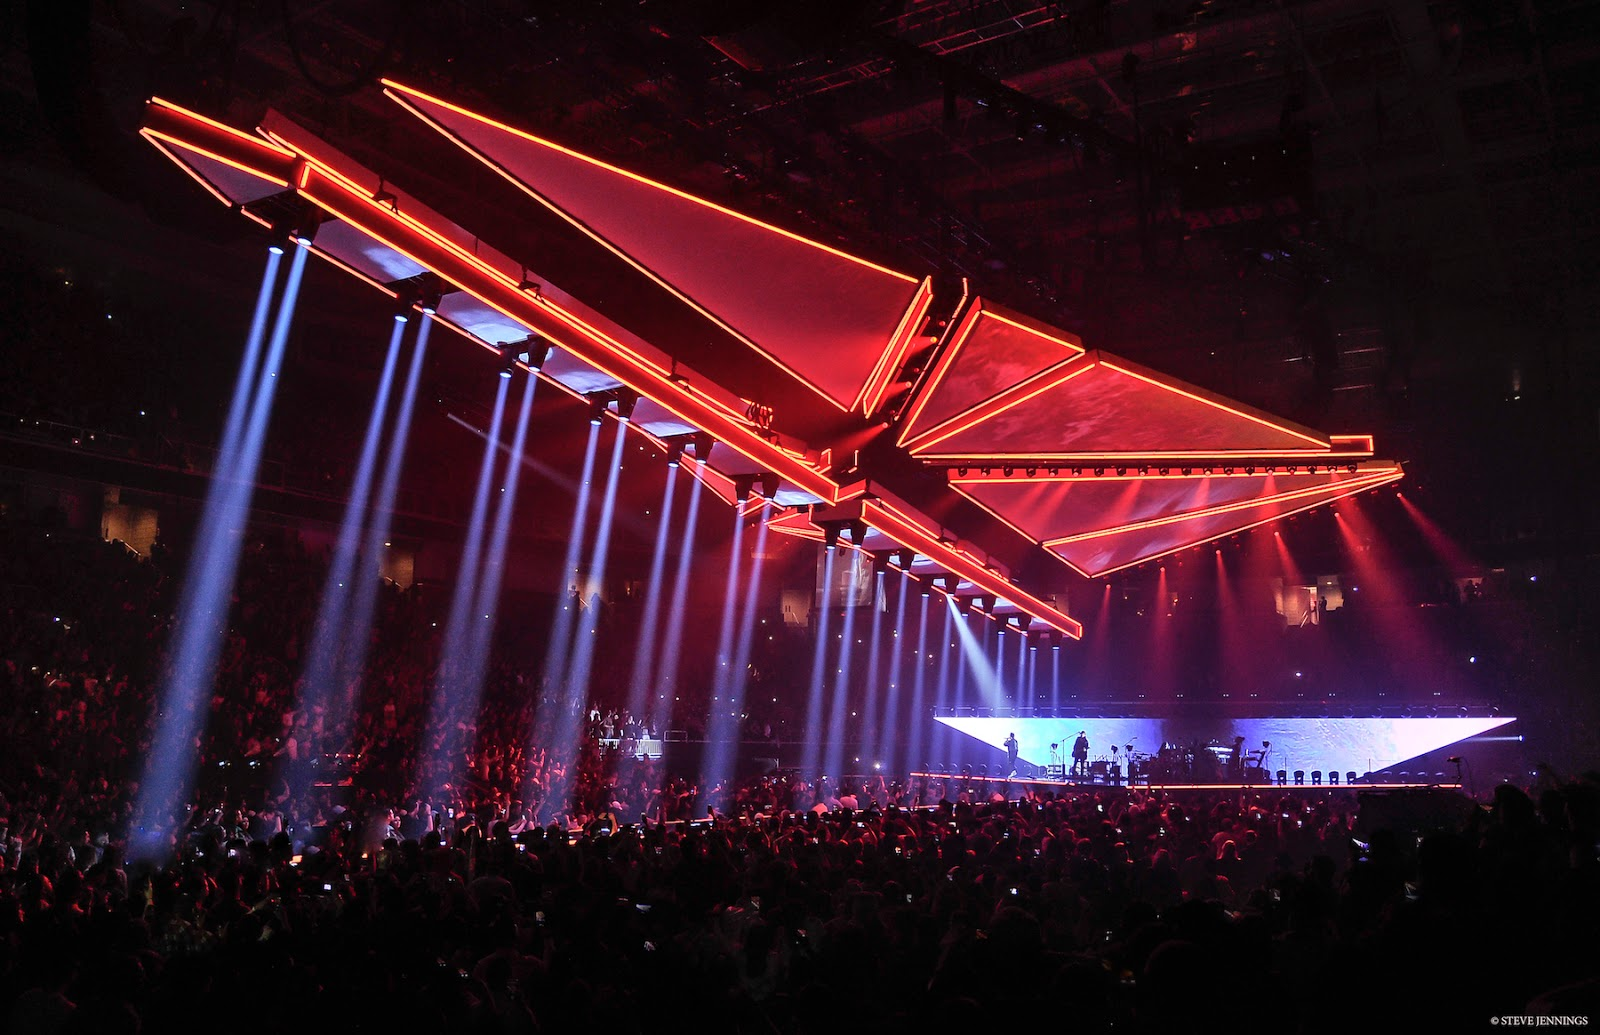 Martin by harman helps electrify the weeknds starboy legend of lighting designer sooner routhier selects vdo sceptron 10 led video fixtures to create an innovative lighting design that blends video projection with a arubaitofo Images